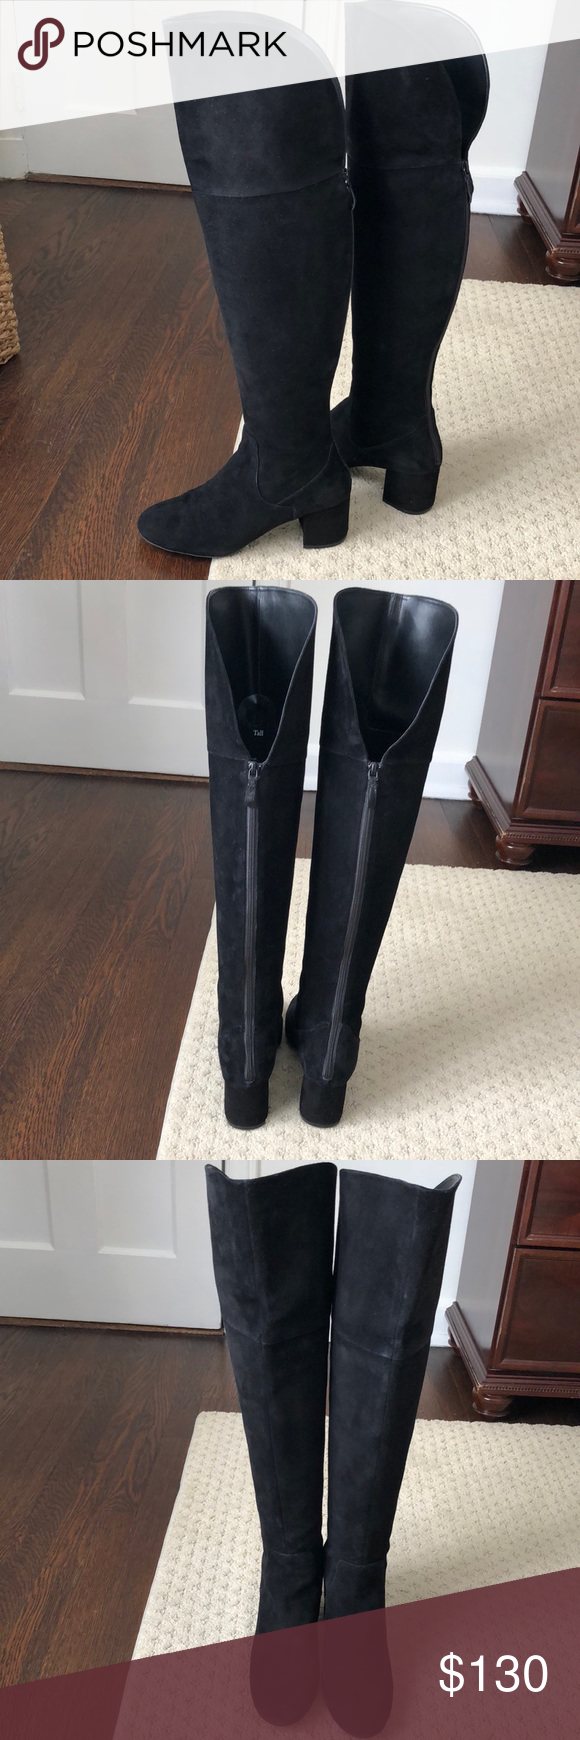 5a3fda4d95a NWOT Sexy Over the Knee Boot NWOB suede over the knee boot by Cole Haan